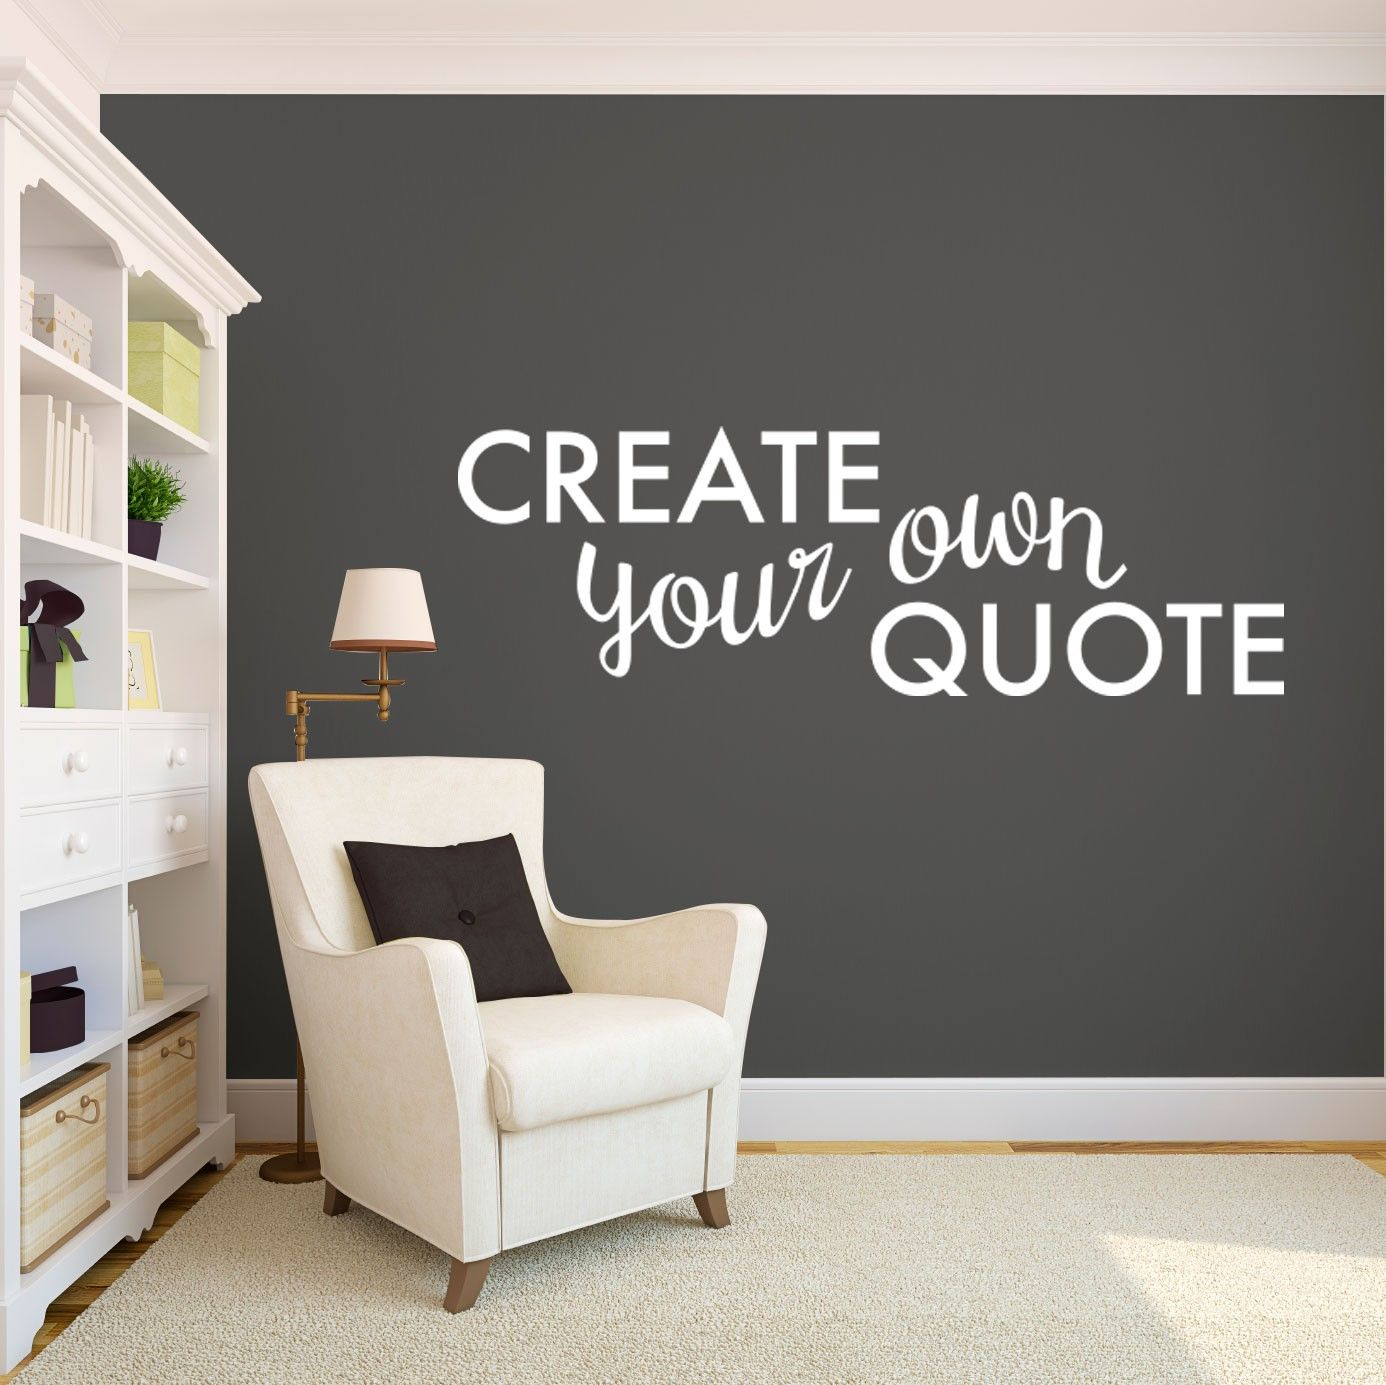 Create your own quote customized wall vinyl decals